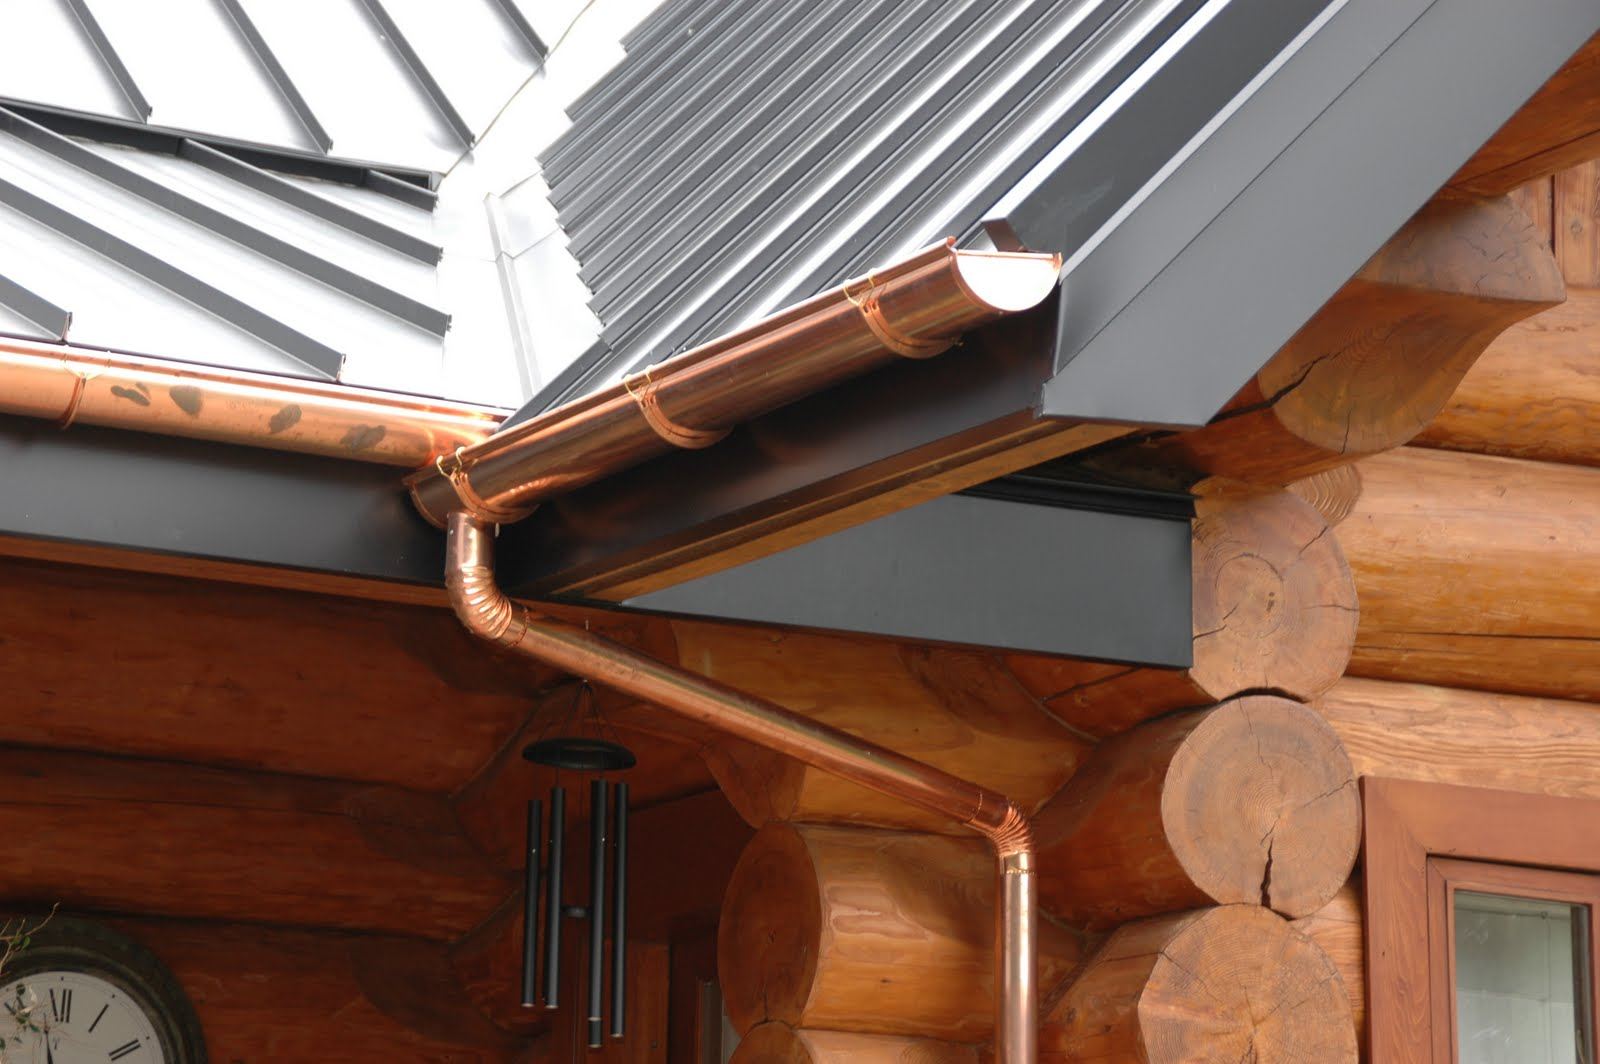 I love metal roofs sterling roof and copper gutters true gems solutioingenieria Image collections